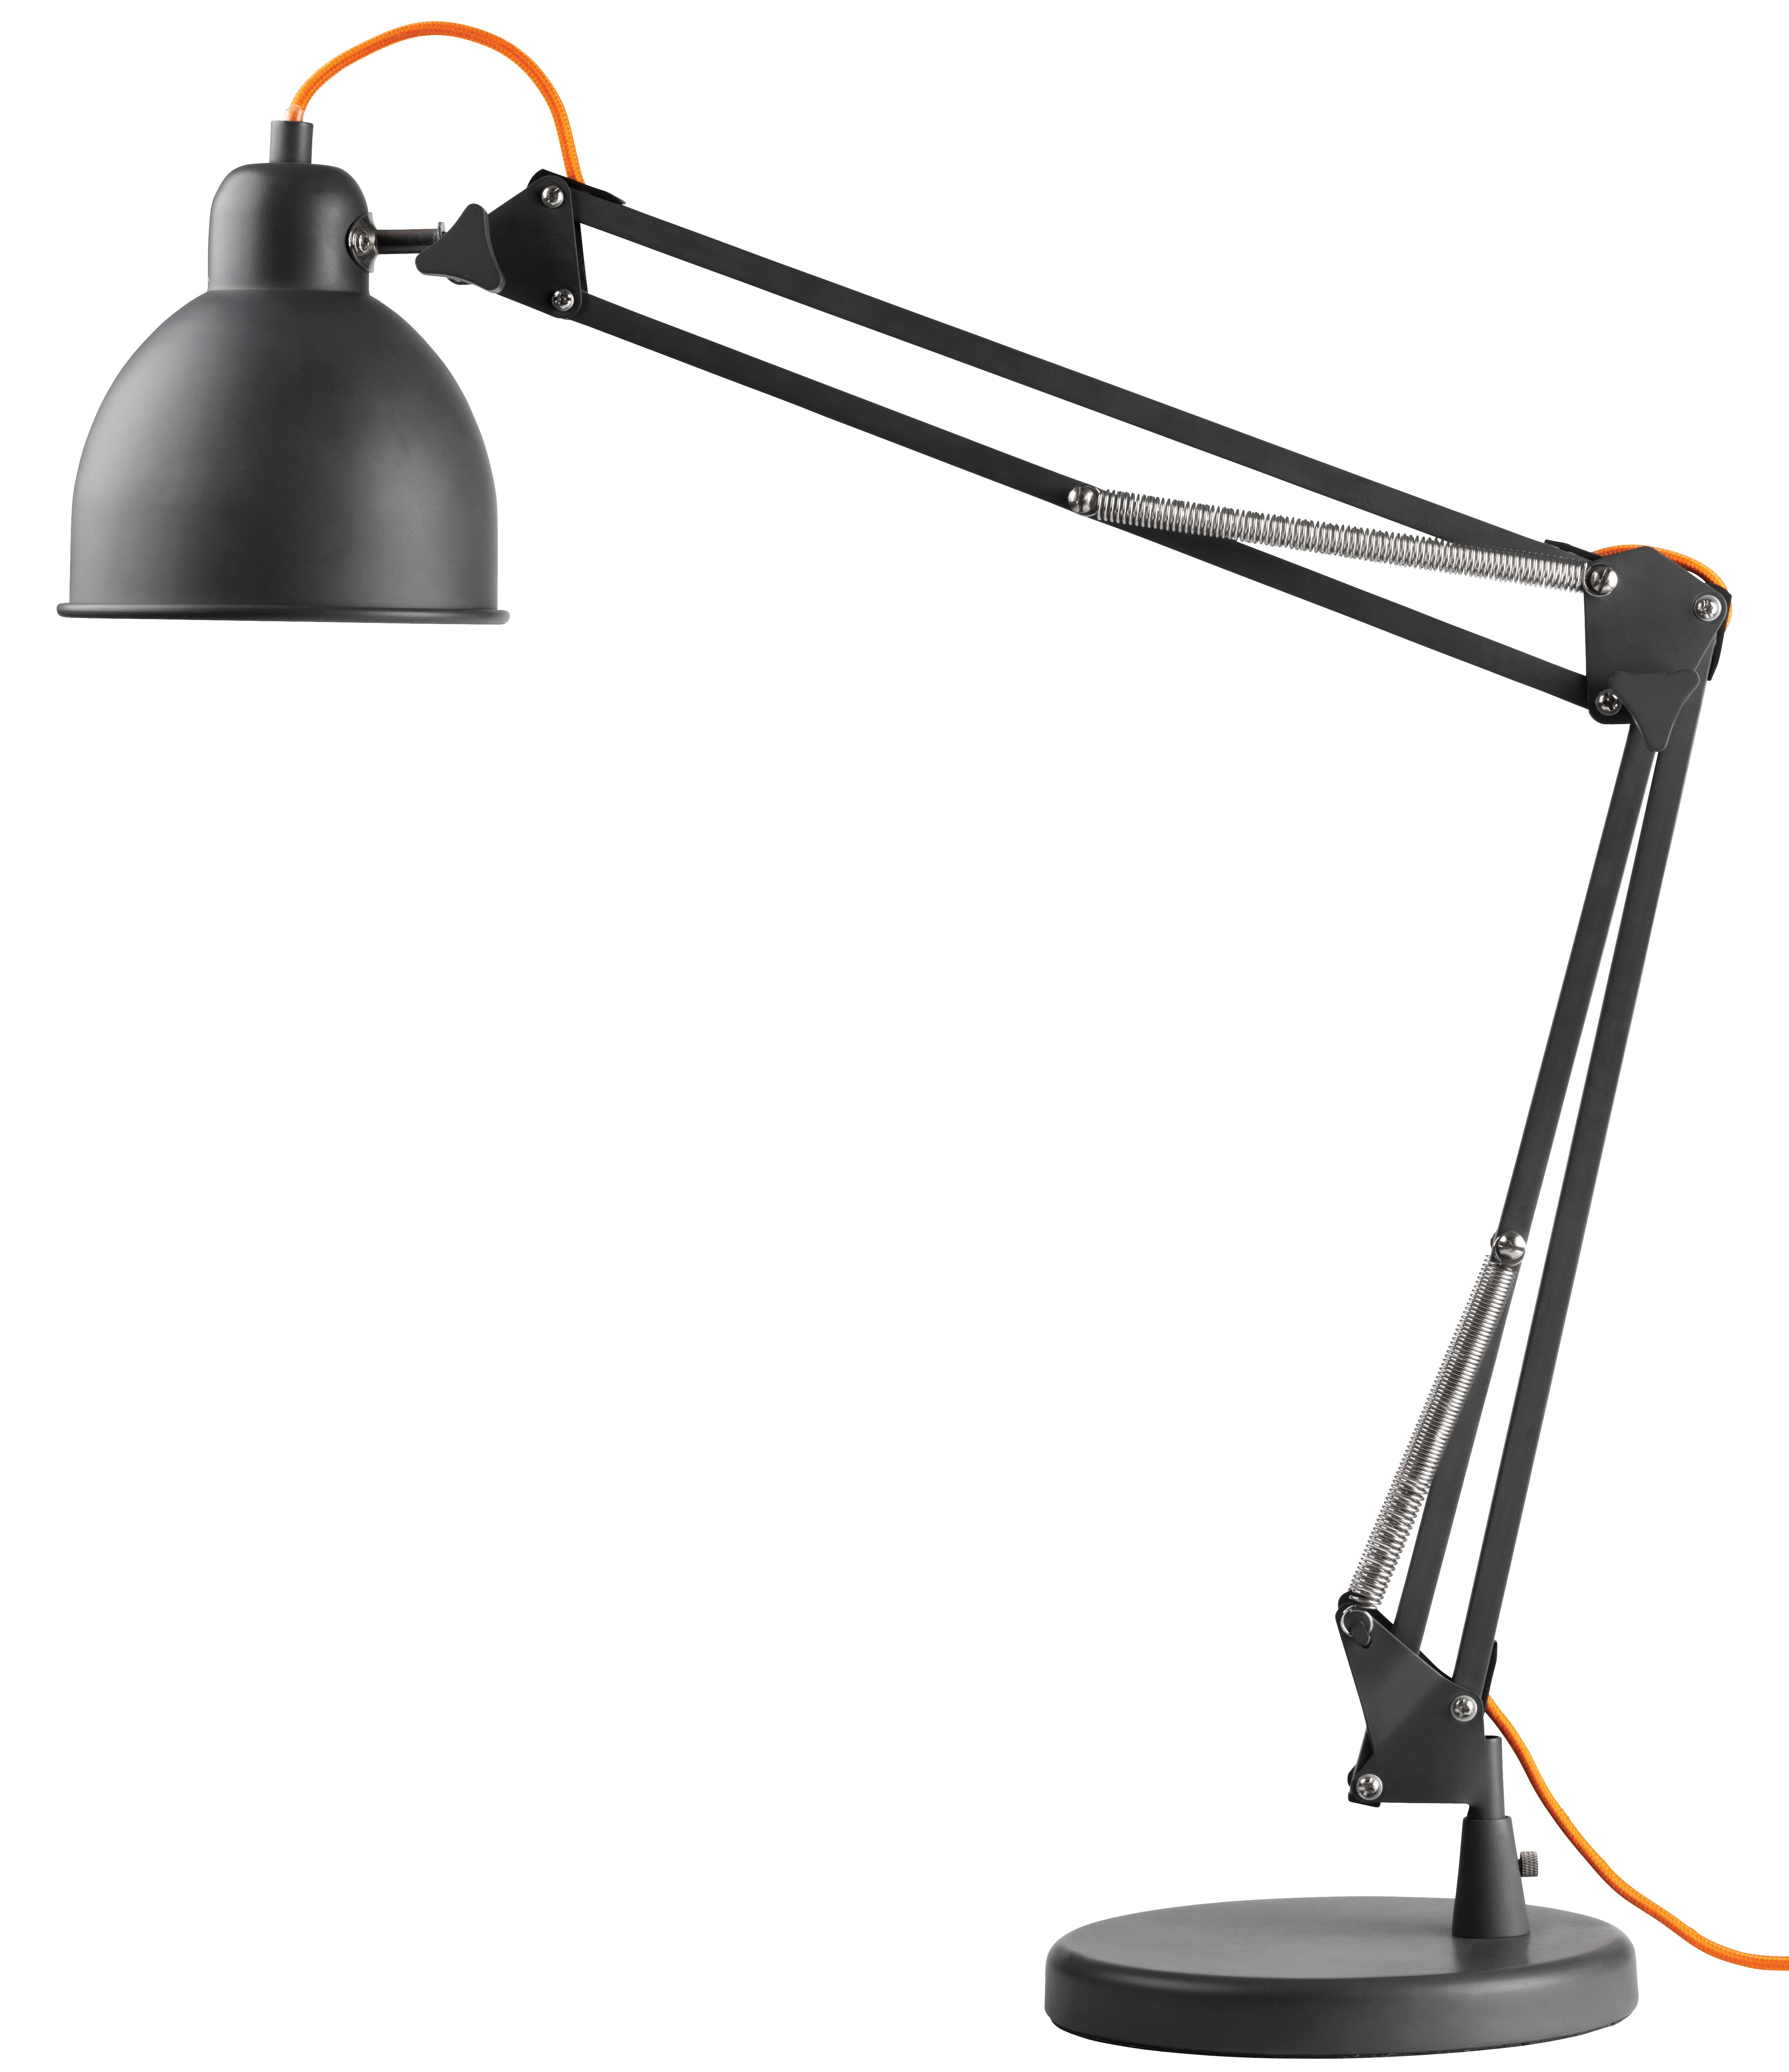 lampe de table industry bras articul gris mat c ble orange frandsen. Black Bedroom Furniture Sets. Home Design Ideas